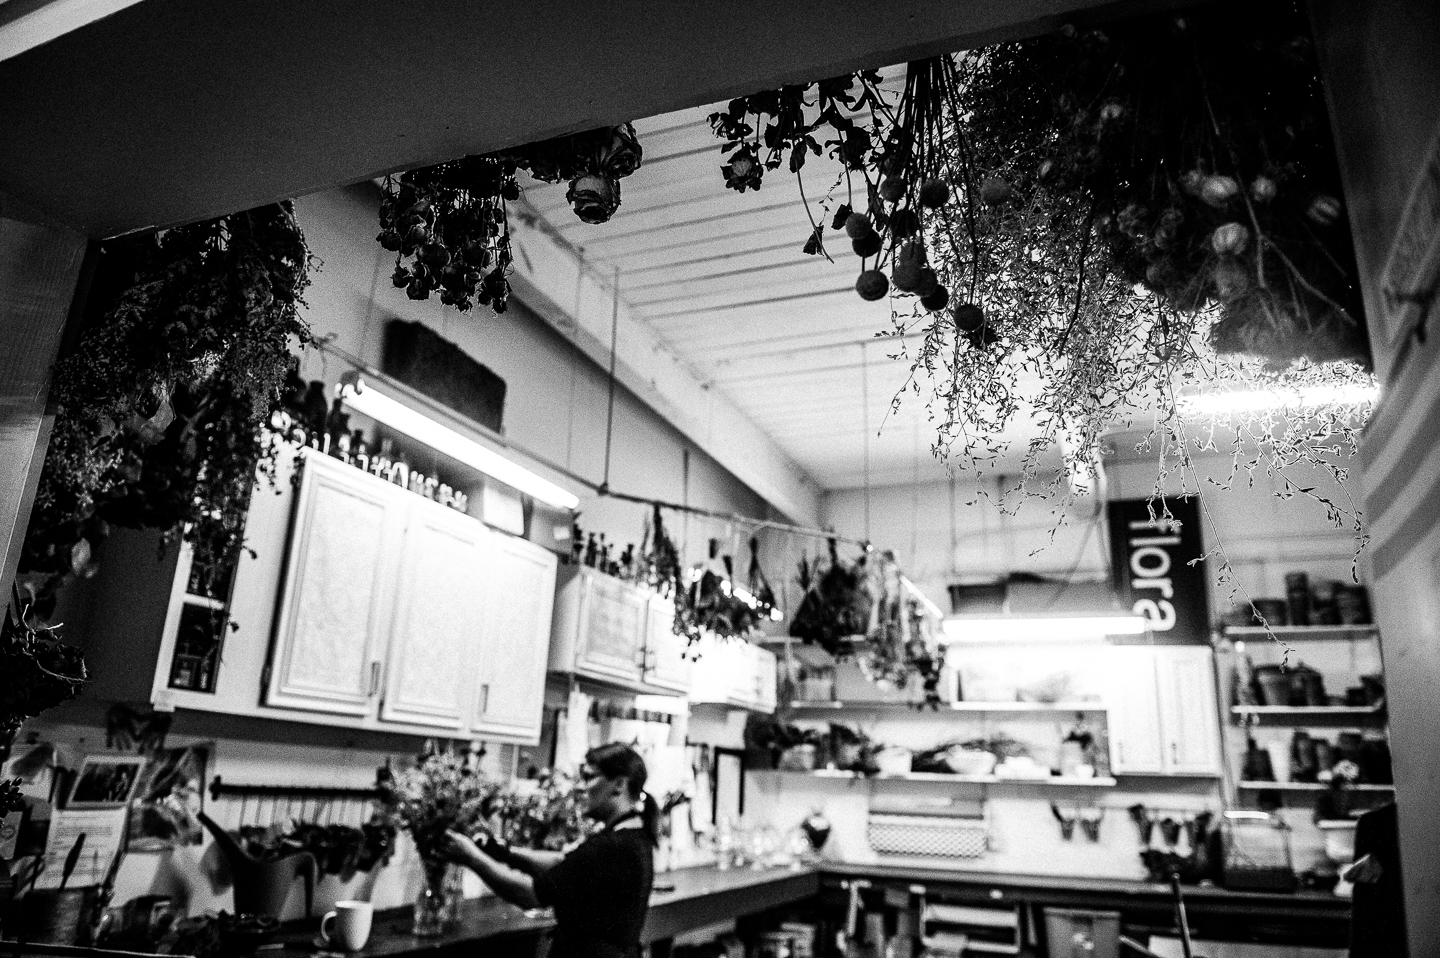 black and white image of asheville wedding florists studio space